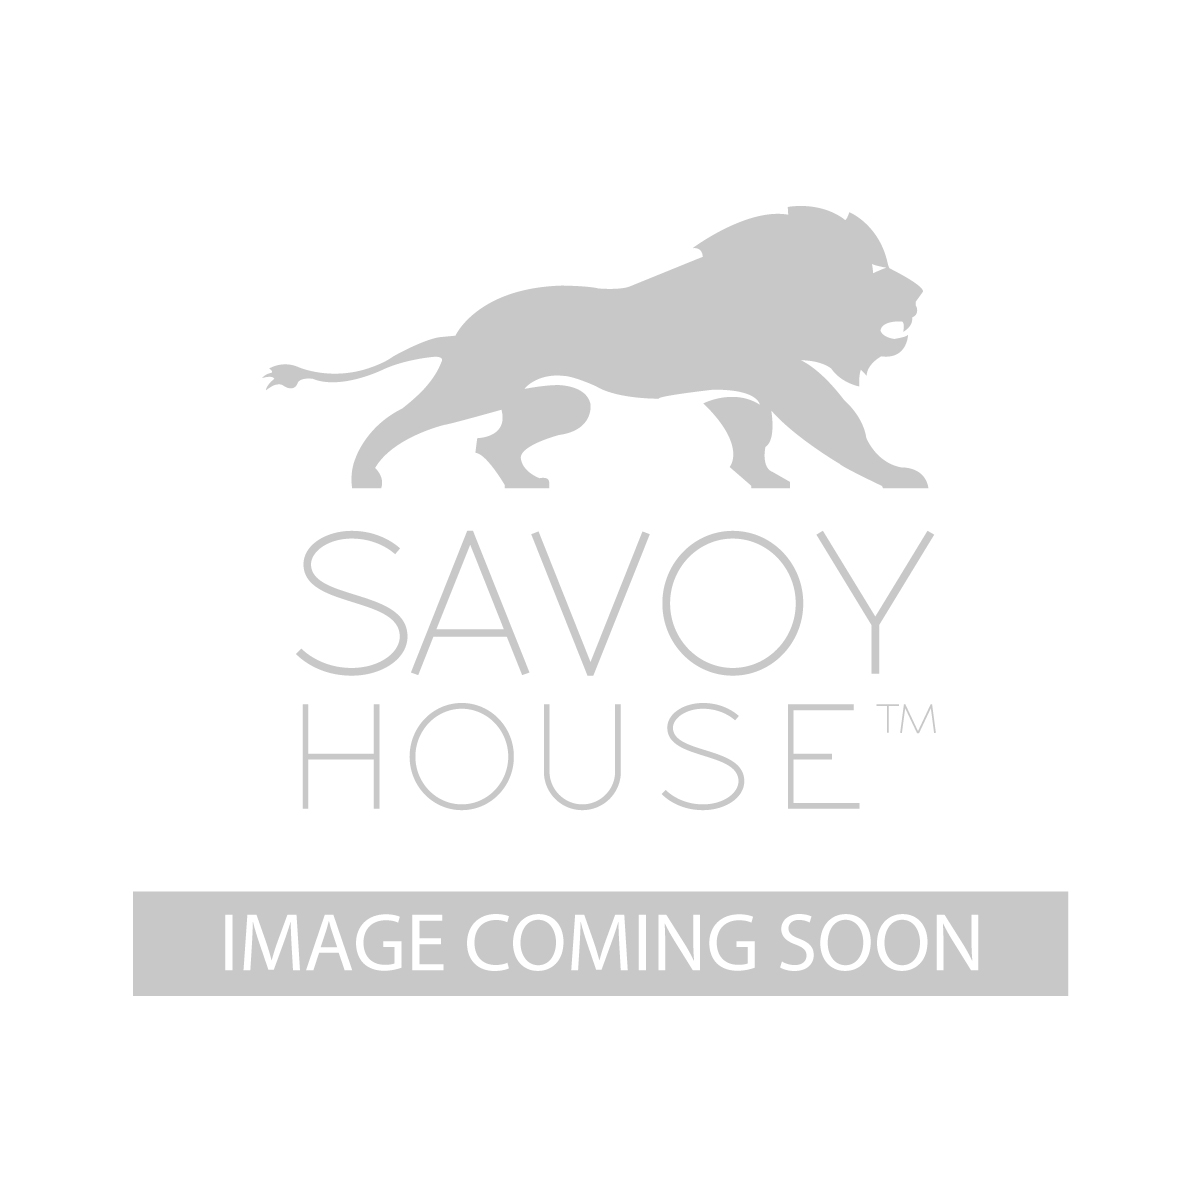 Bath Vanity Lights By Savoy House - Savoy bathroom light fixtures